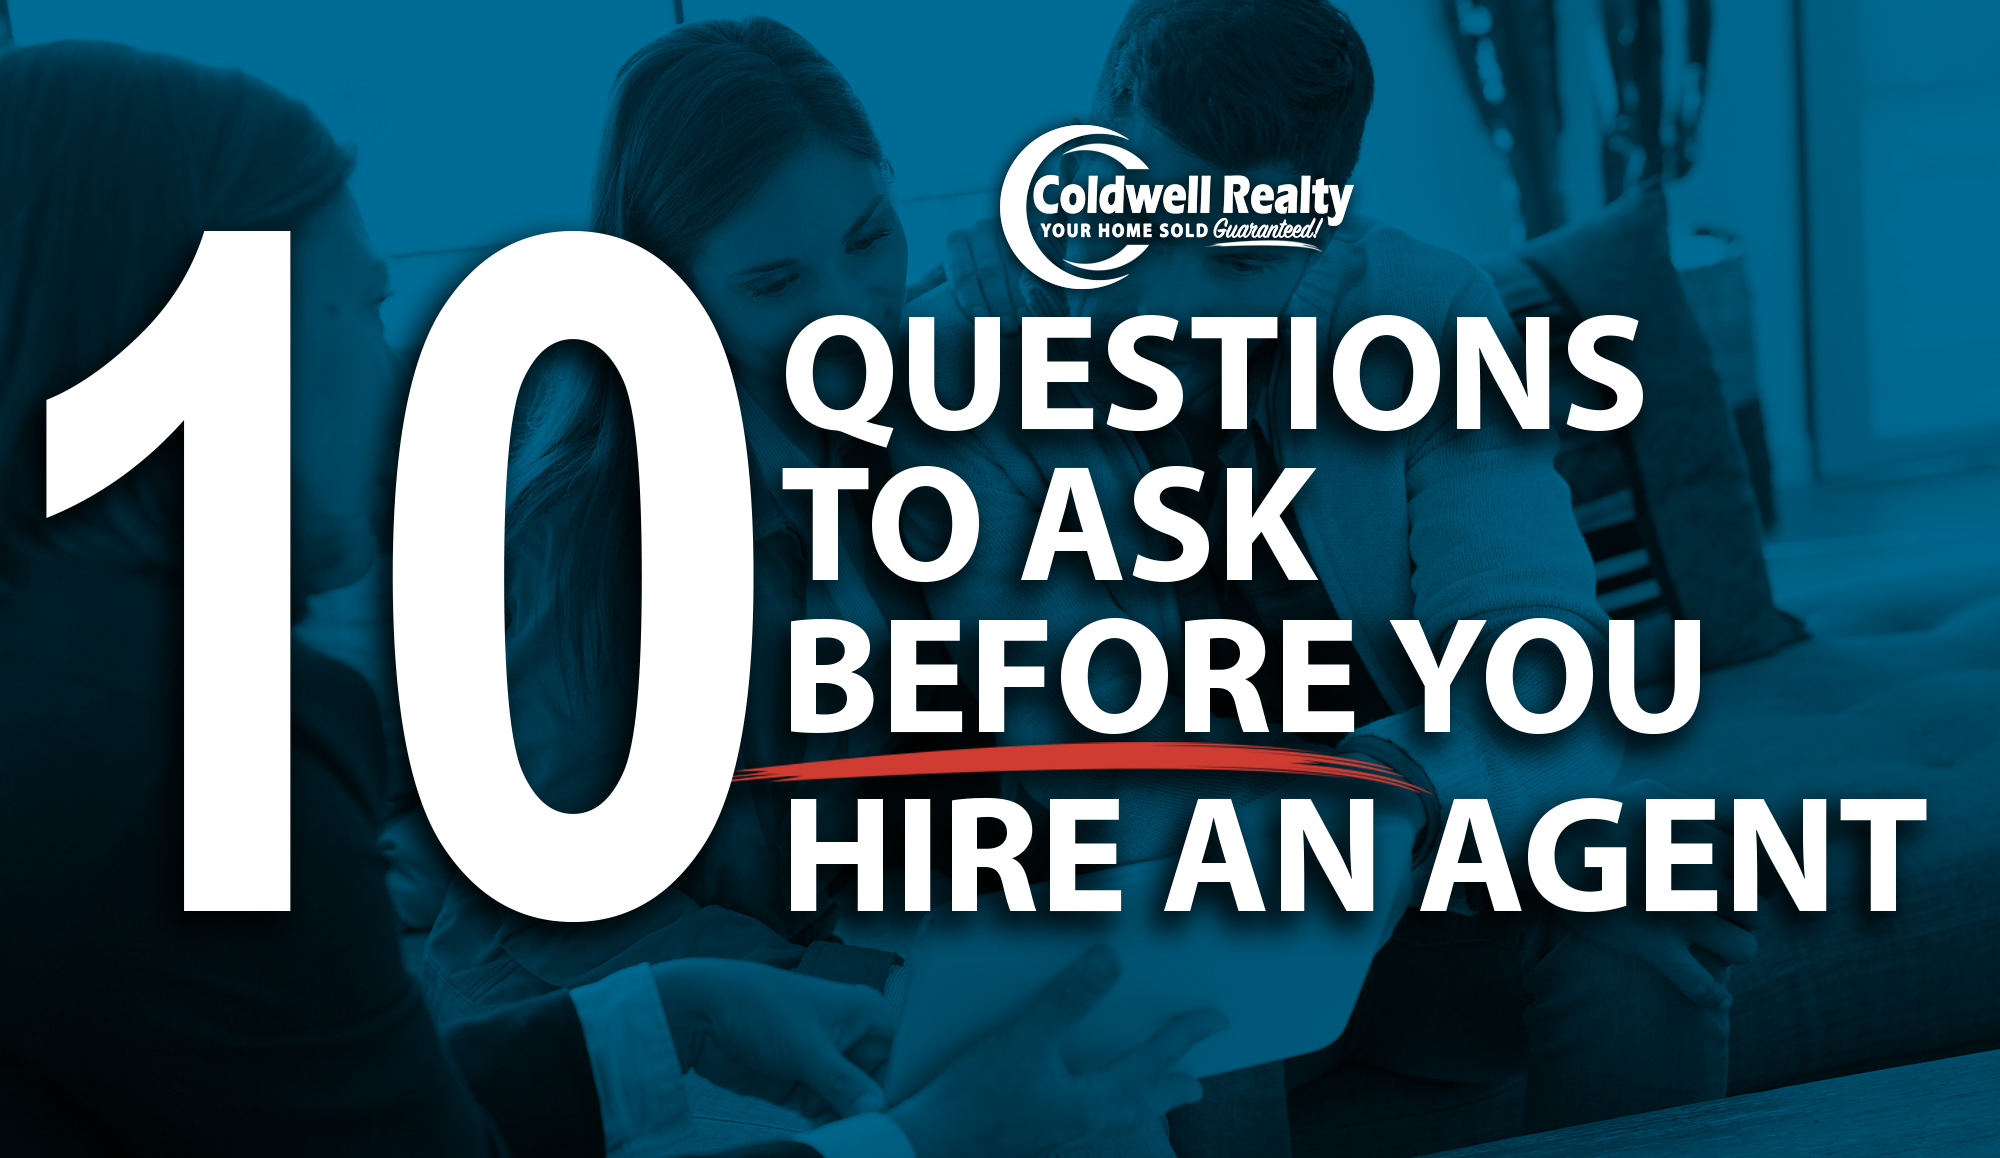 10 Questions to Ask.jpg